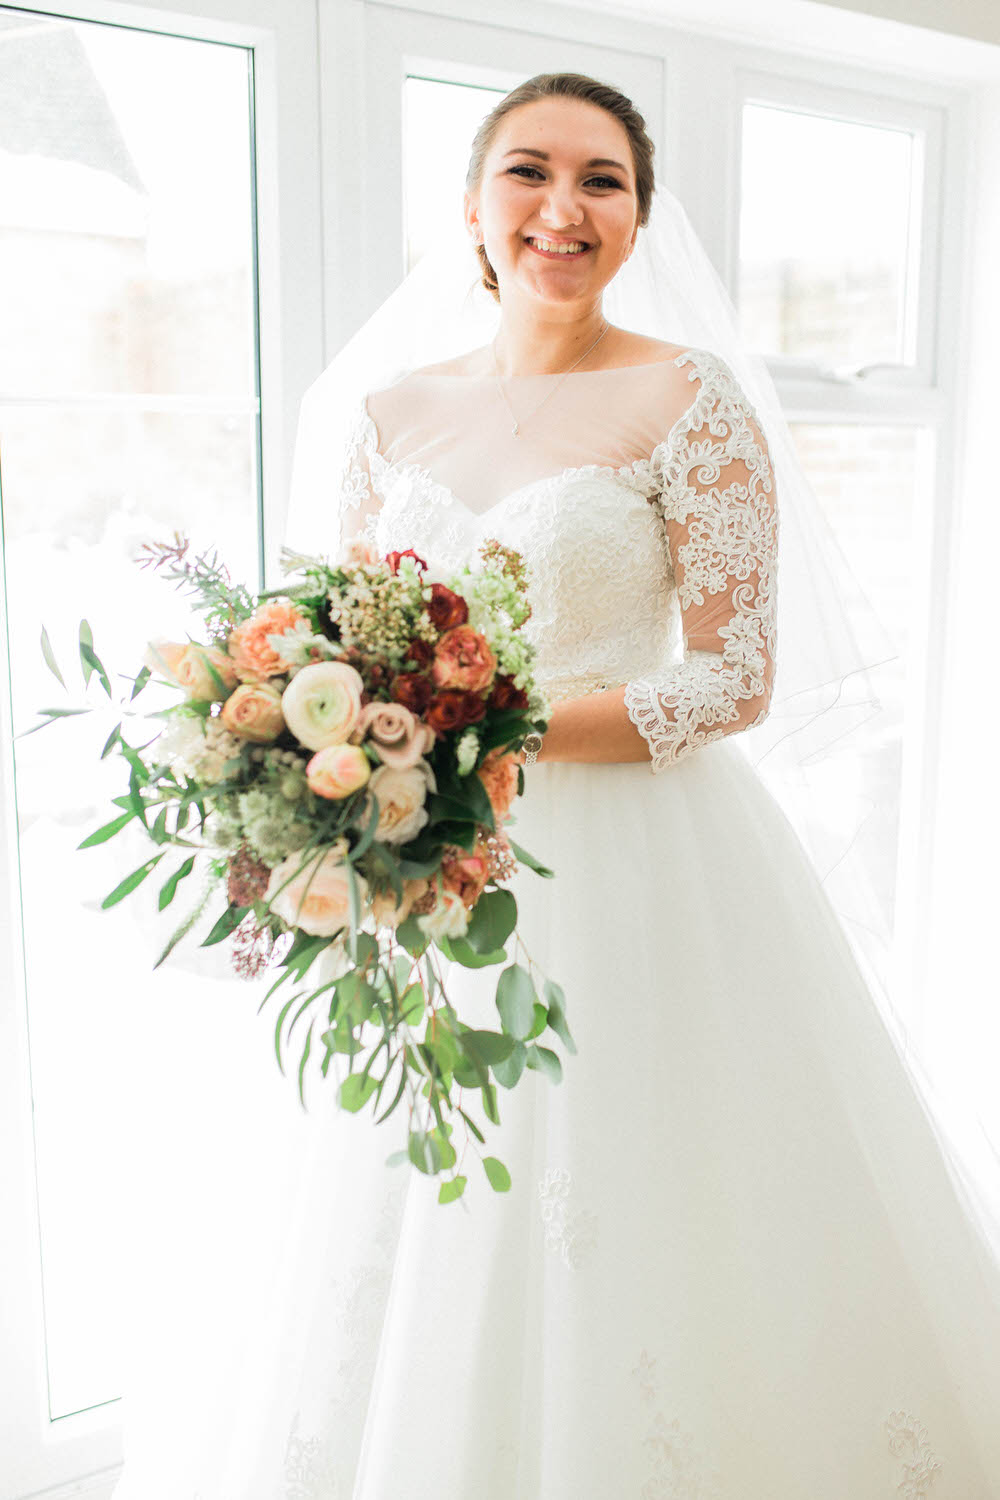 Cheltenham-Wedding-Photographer-Winter-Wedding-Flowers-By-Charlotte-Harrison-Dress-By-Milla-Nova.jpg